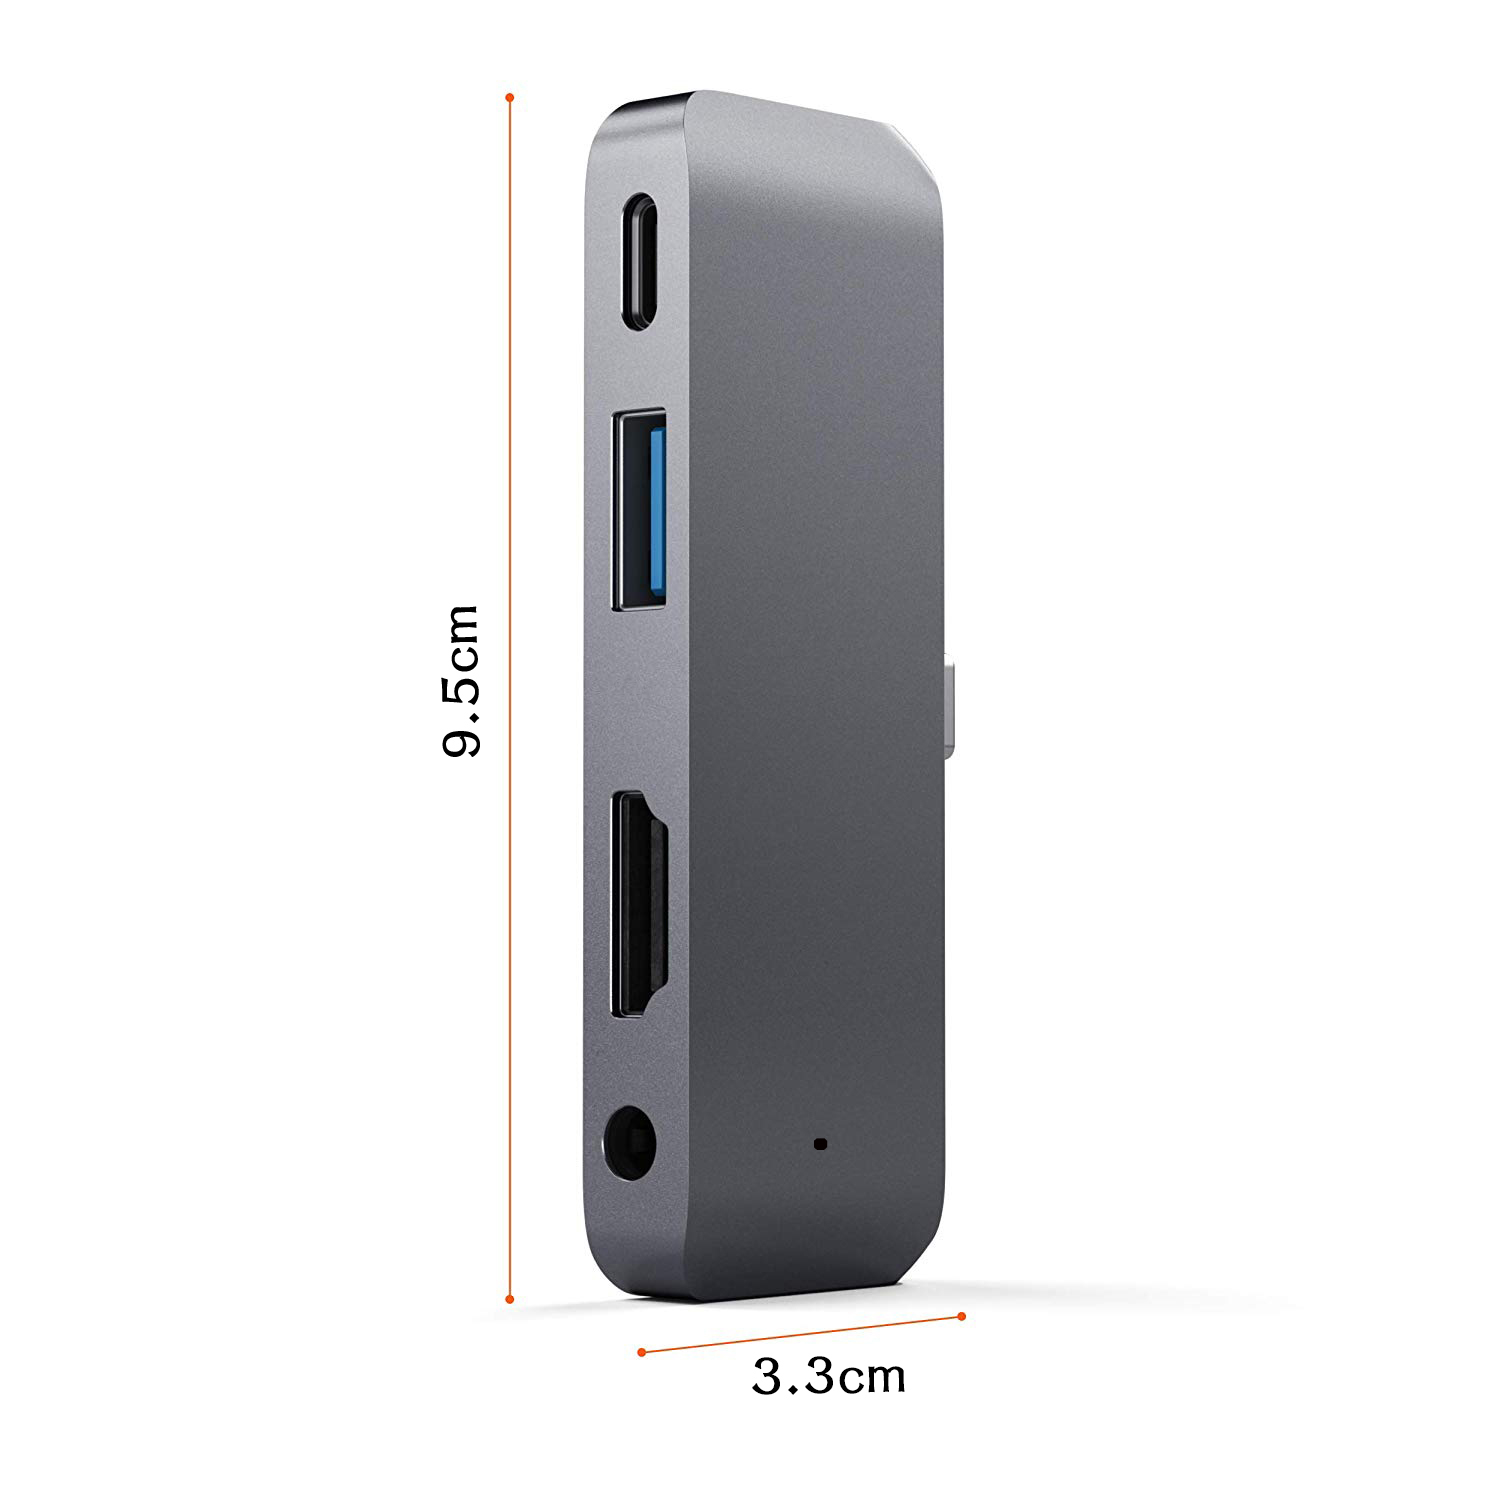 Image 4 - For 2018 iPad Mobile Pro Type C USB Hub Adapter with USB C PD Charging 4K HDMI USB 3.0 & 3.5mm Headphone Jack-in USB Hubs from Computer & Office